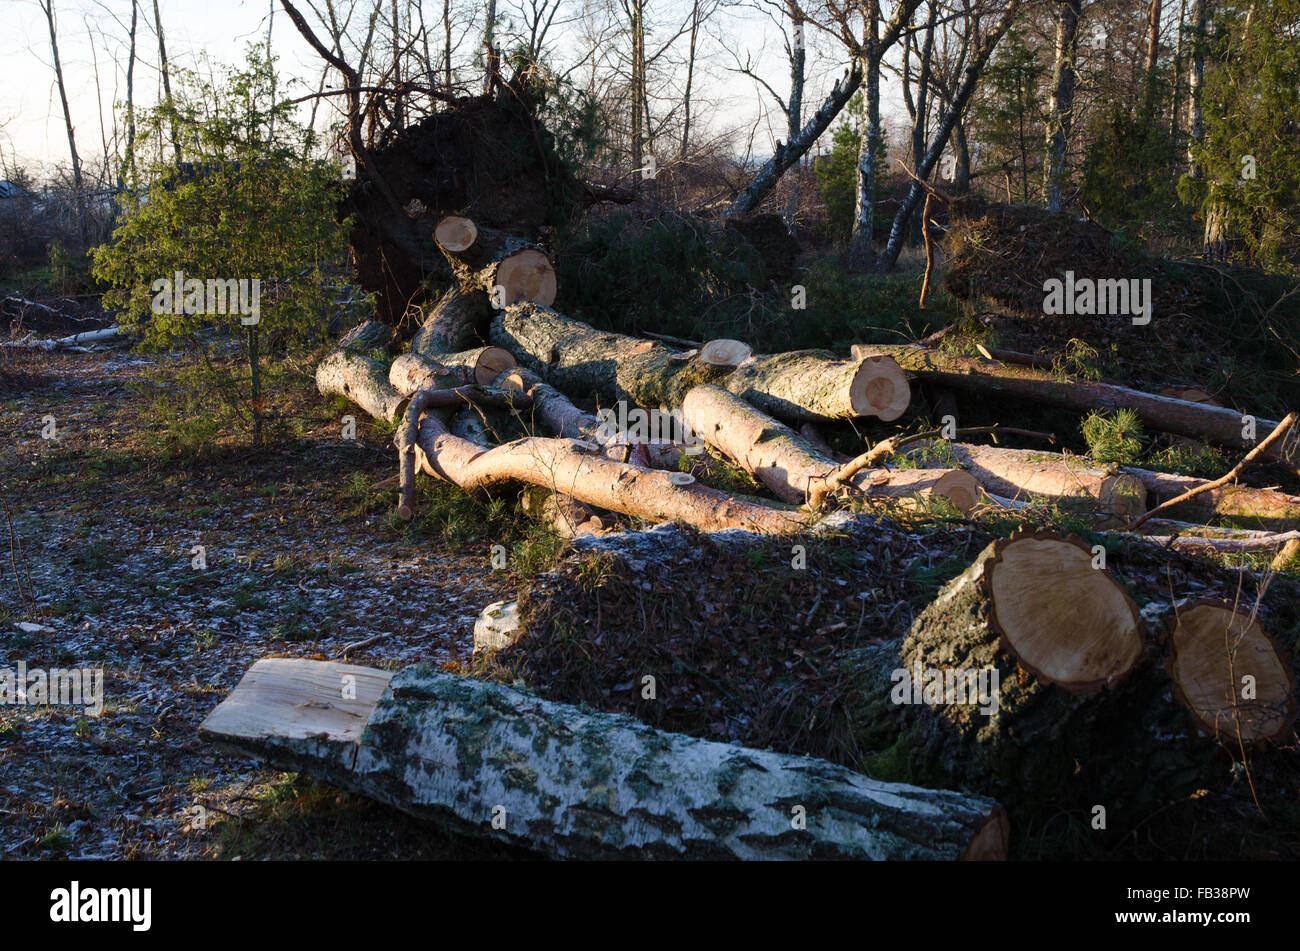 Fallen and cut trees in a mess after the storm - Stock Image